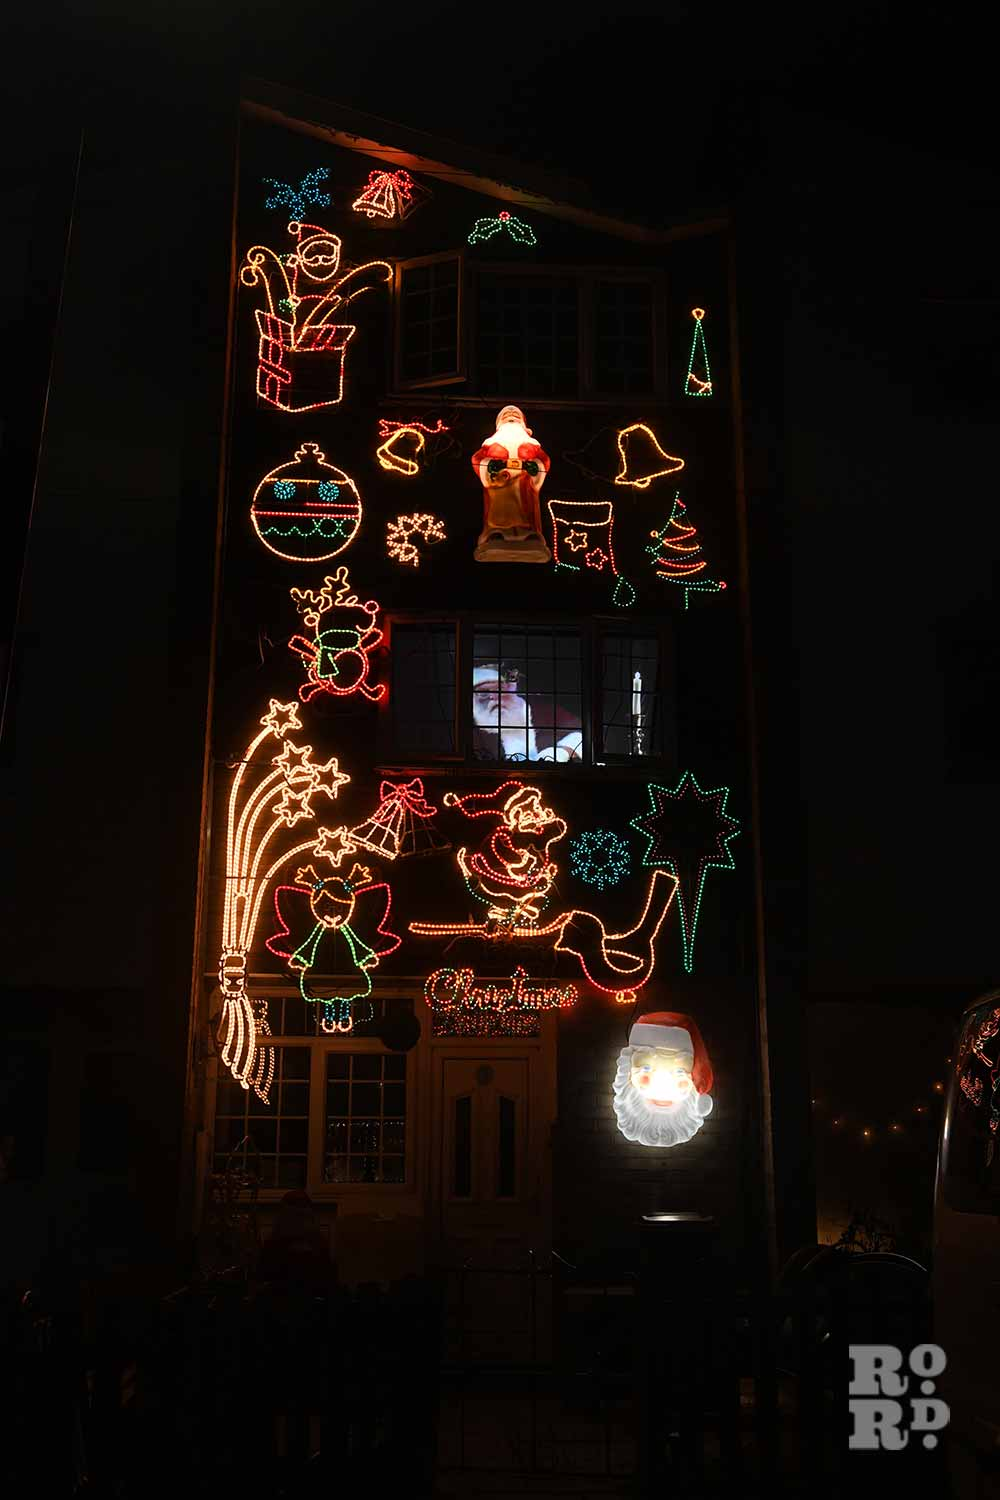 A house covered in illuminated festive shapes in Bow, by photographer Phil Verney